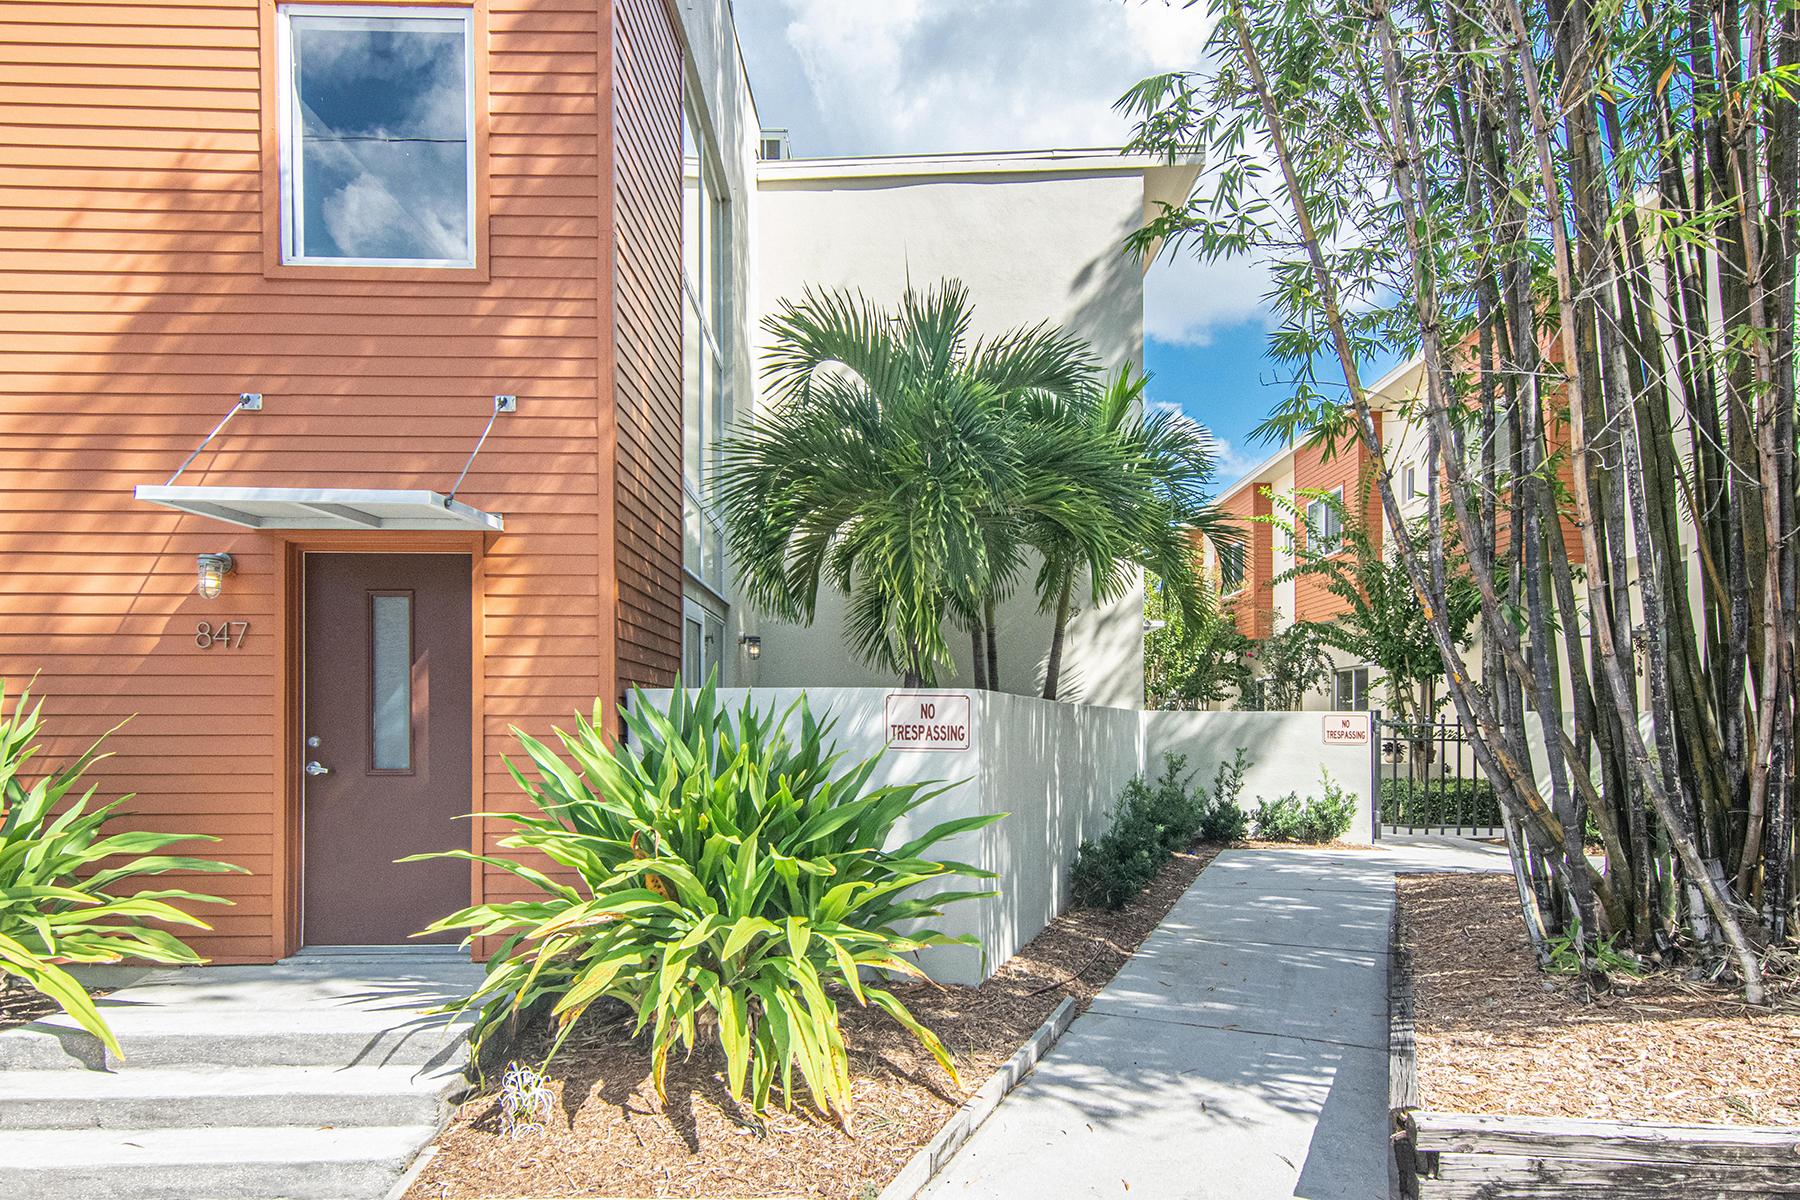 townhouses for Sale at 851 3rd Ave N, St. Petersburg, Florida 33701 United States